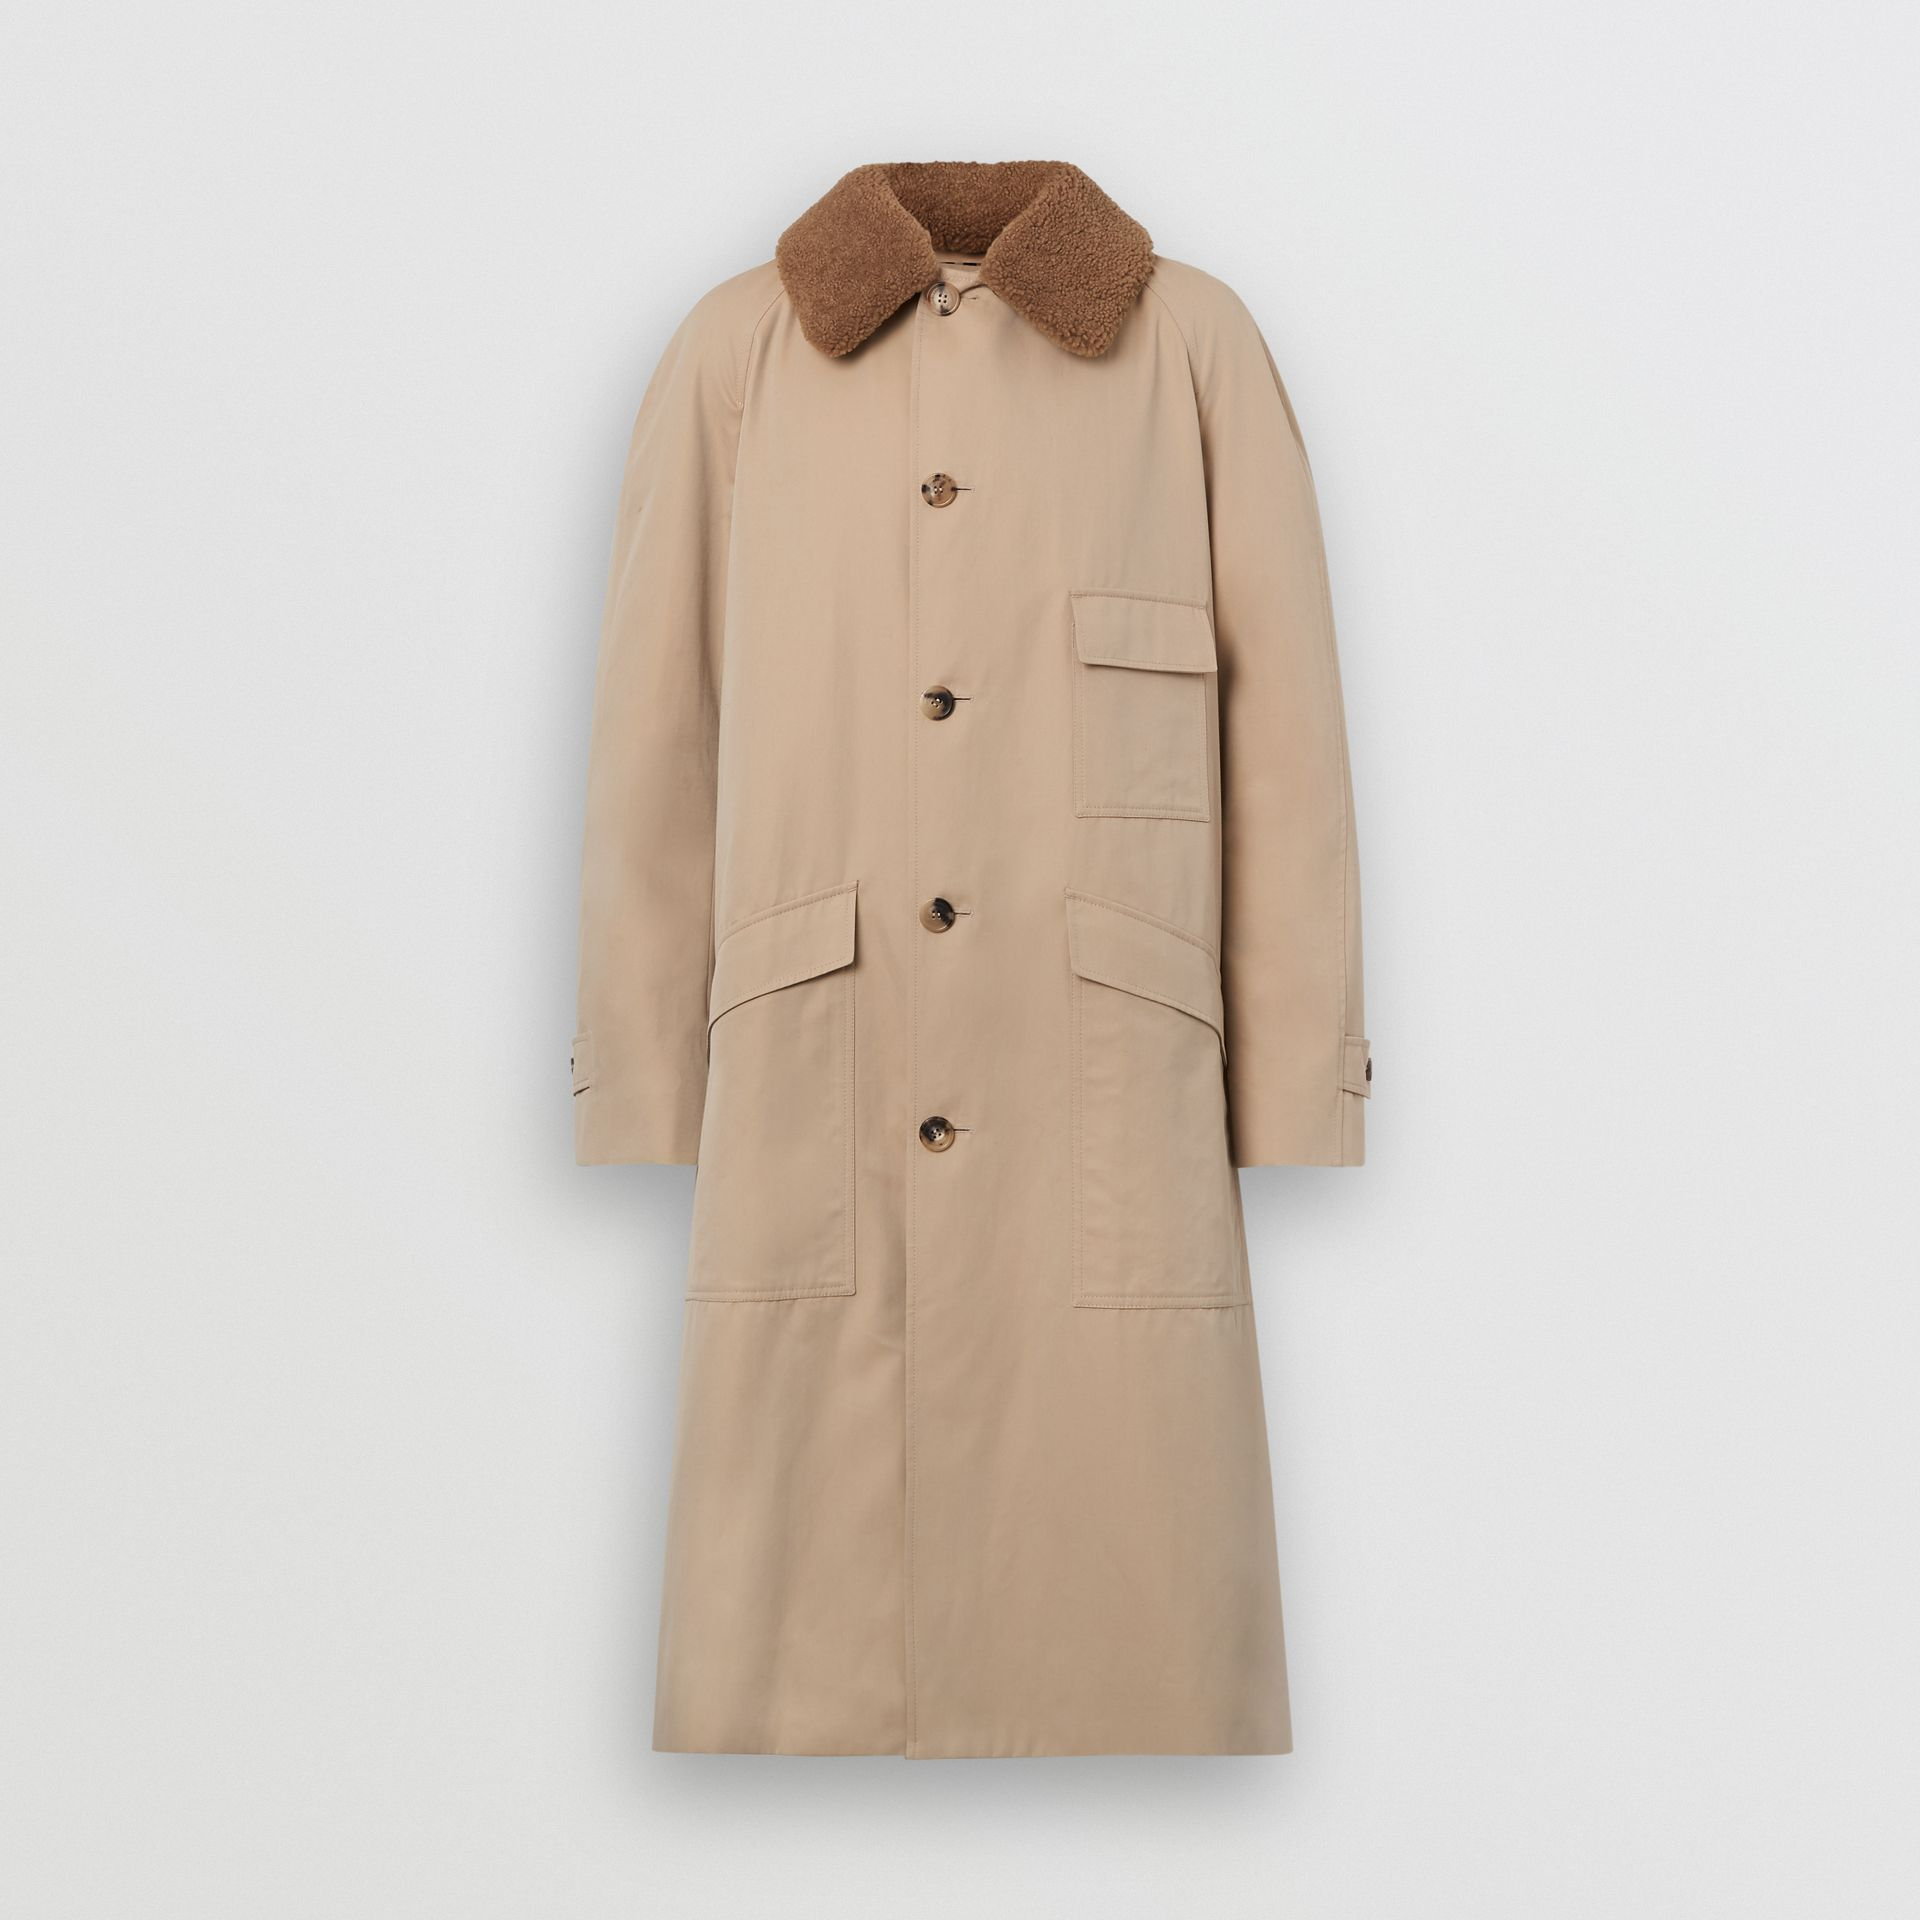 Paletot en coton avec col en shearling amovible (Miel) | Burberry - photo de la galerie 3